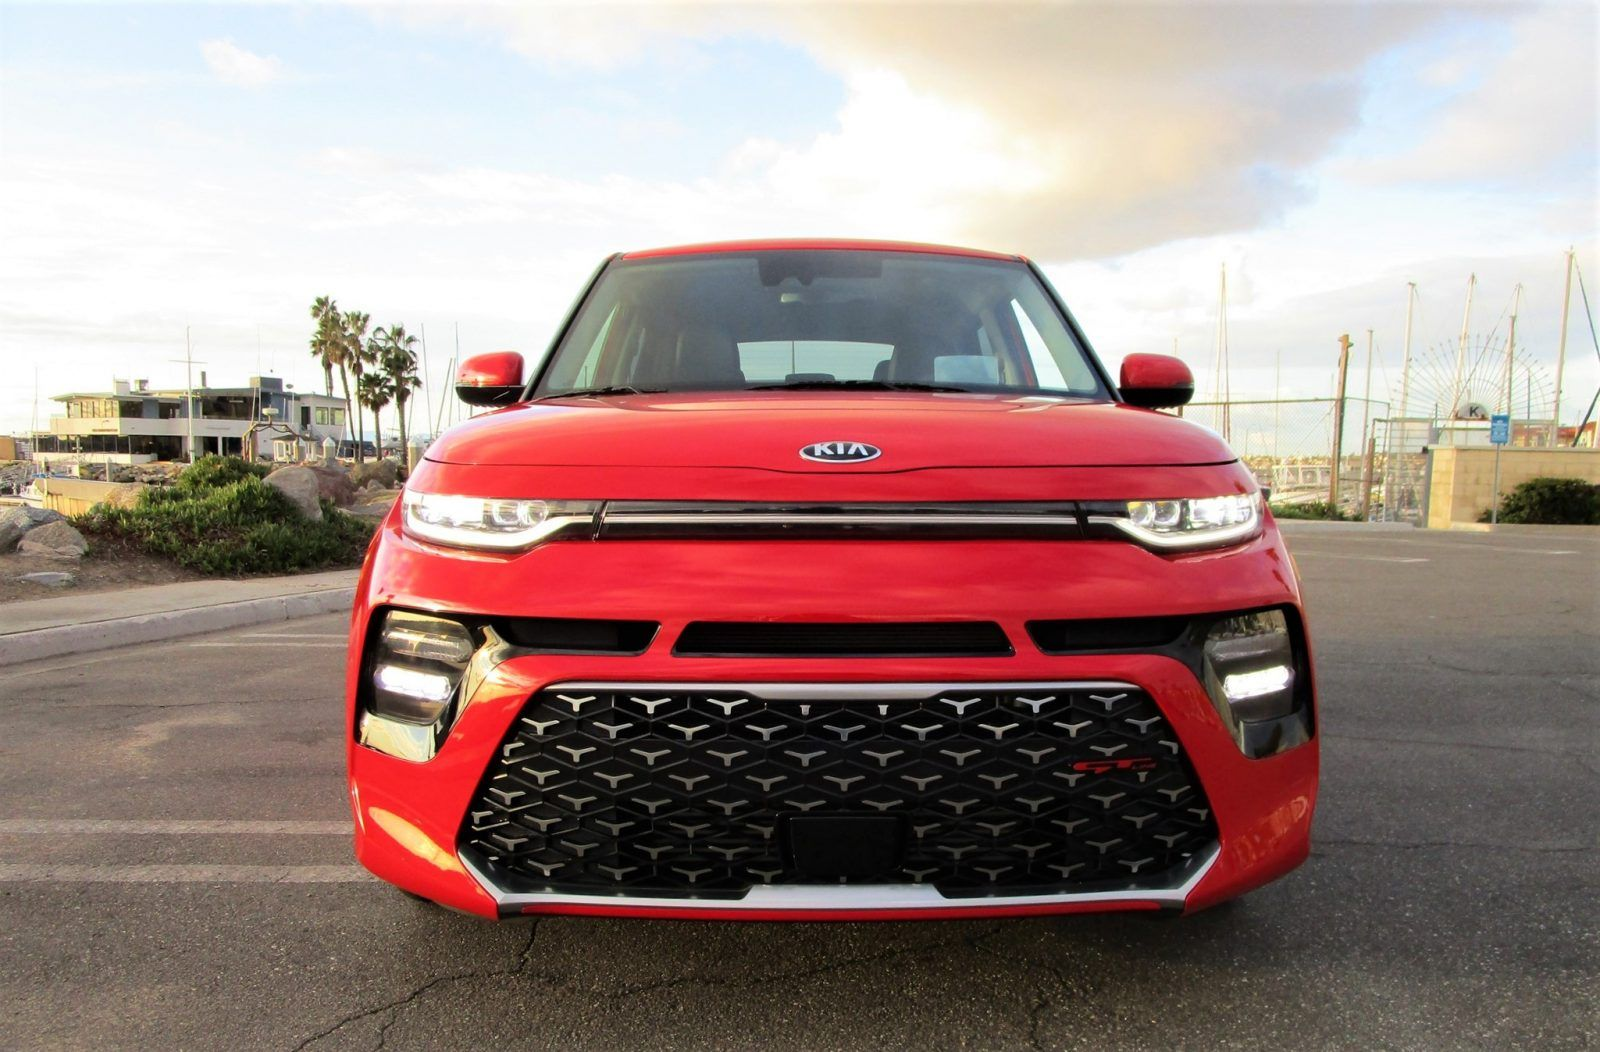 2020 Kia Soul Gt Line Review By Ben Lewis Kia Soul Car Shop Car